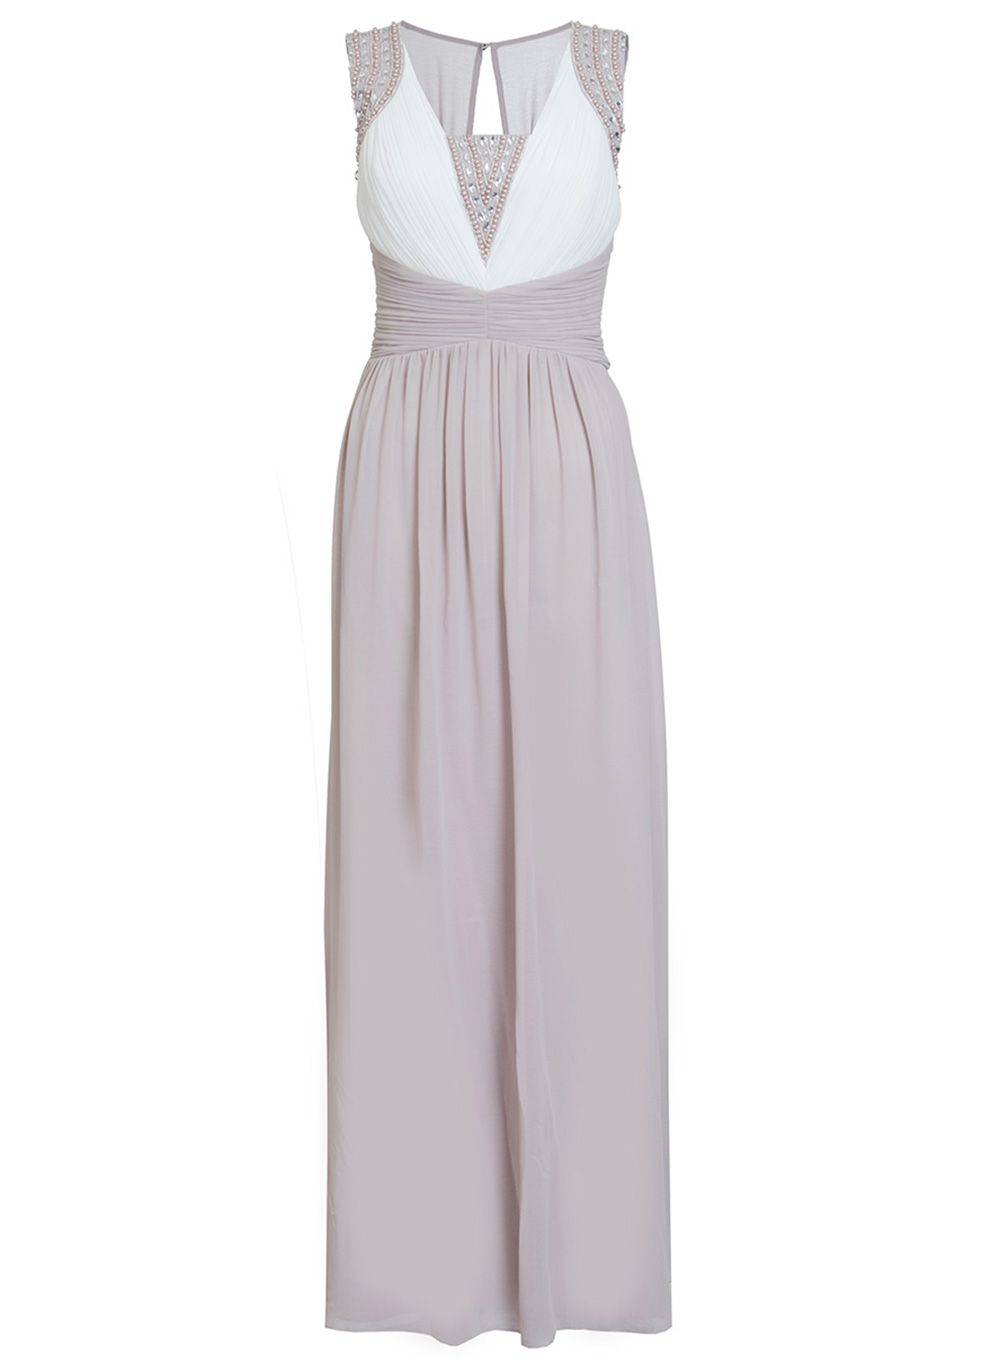 Quiz Mocha And Cream Chiffon Embellished Maxi Dress, Cream